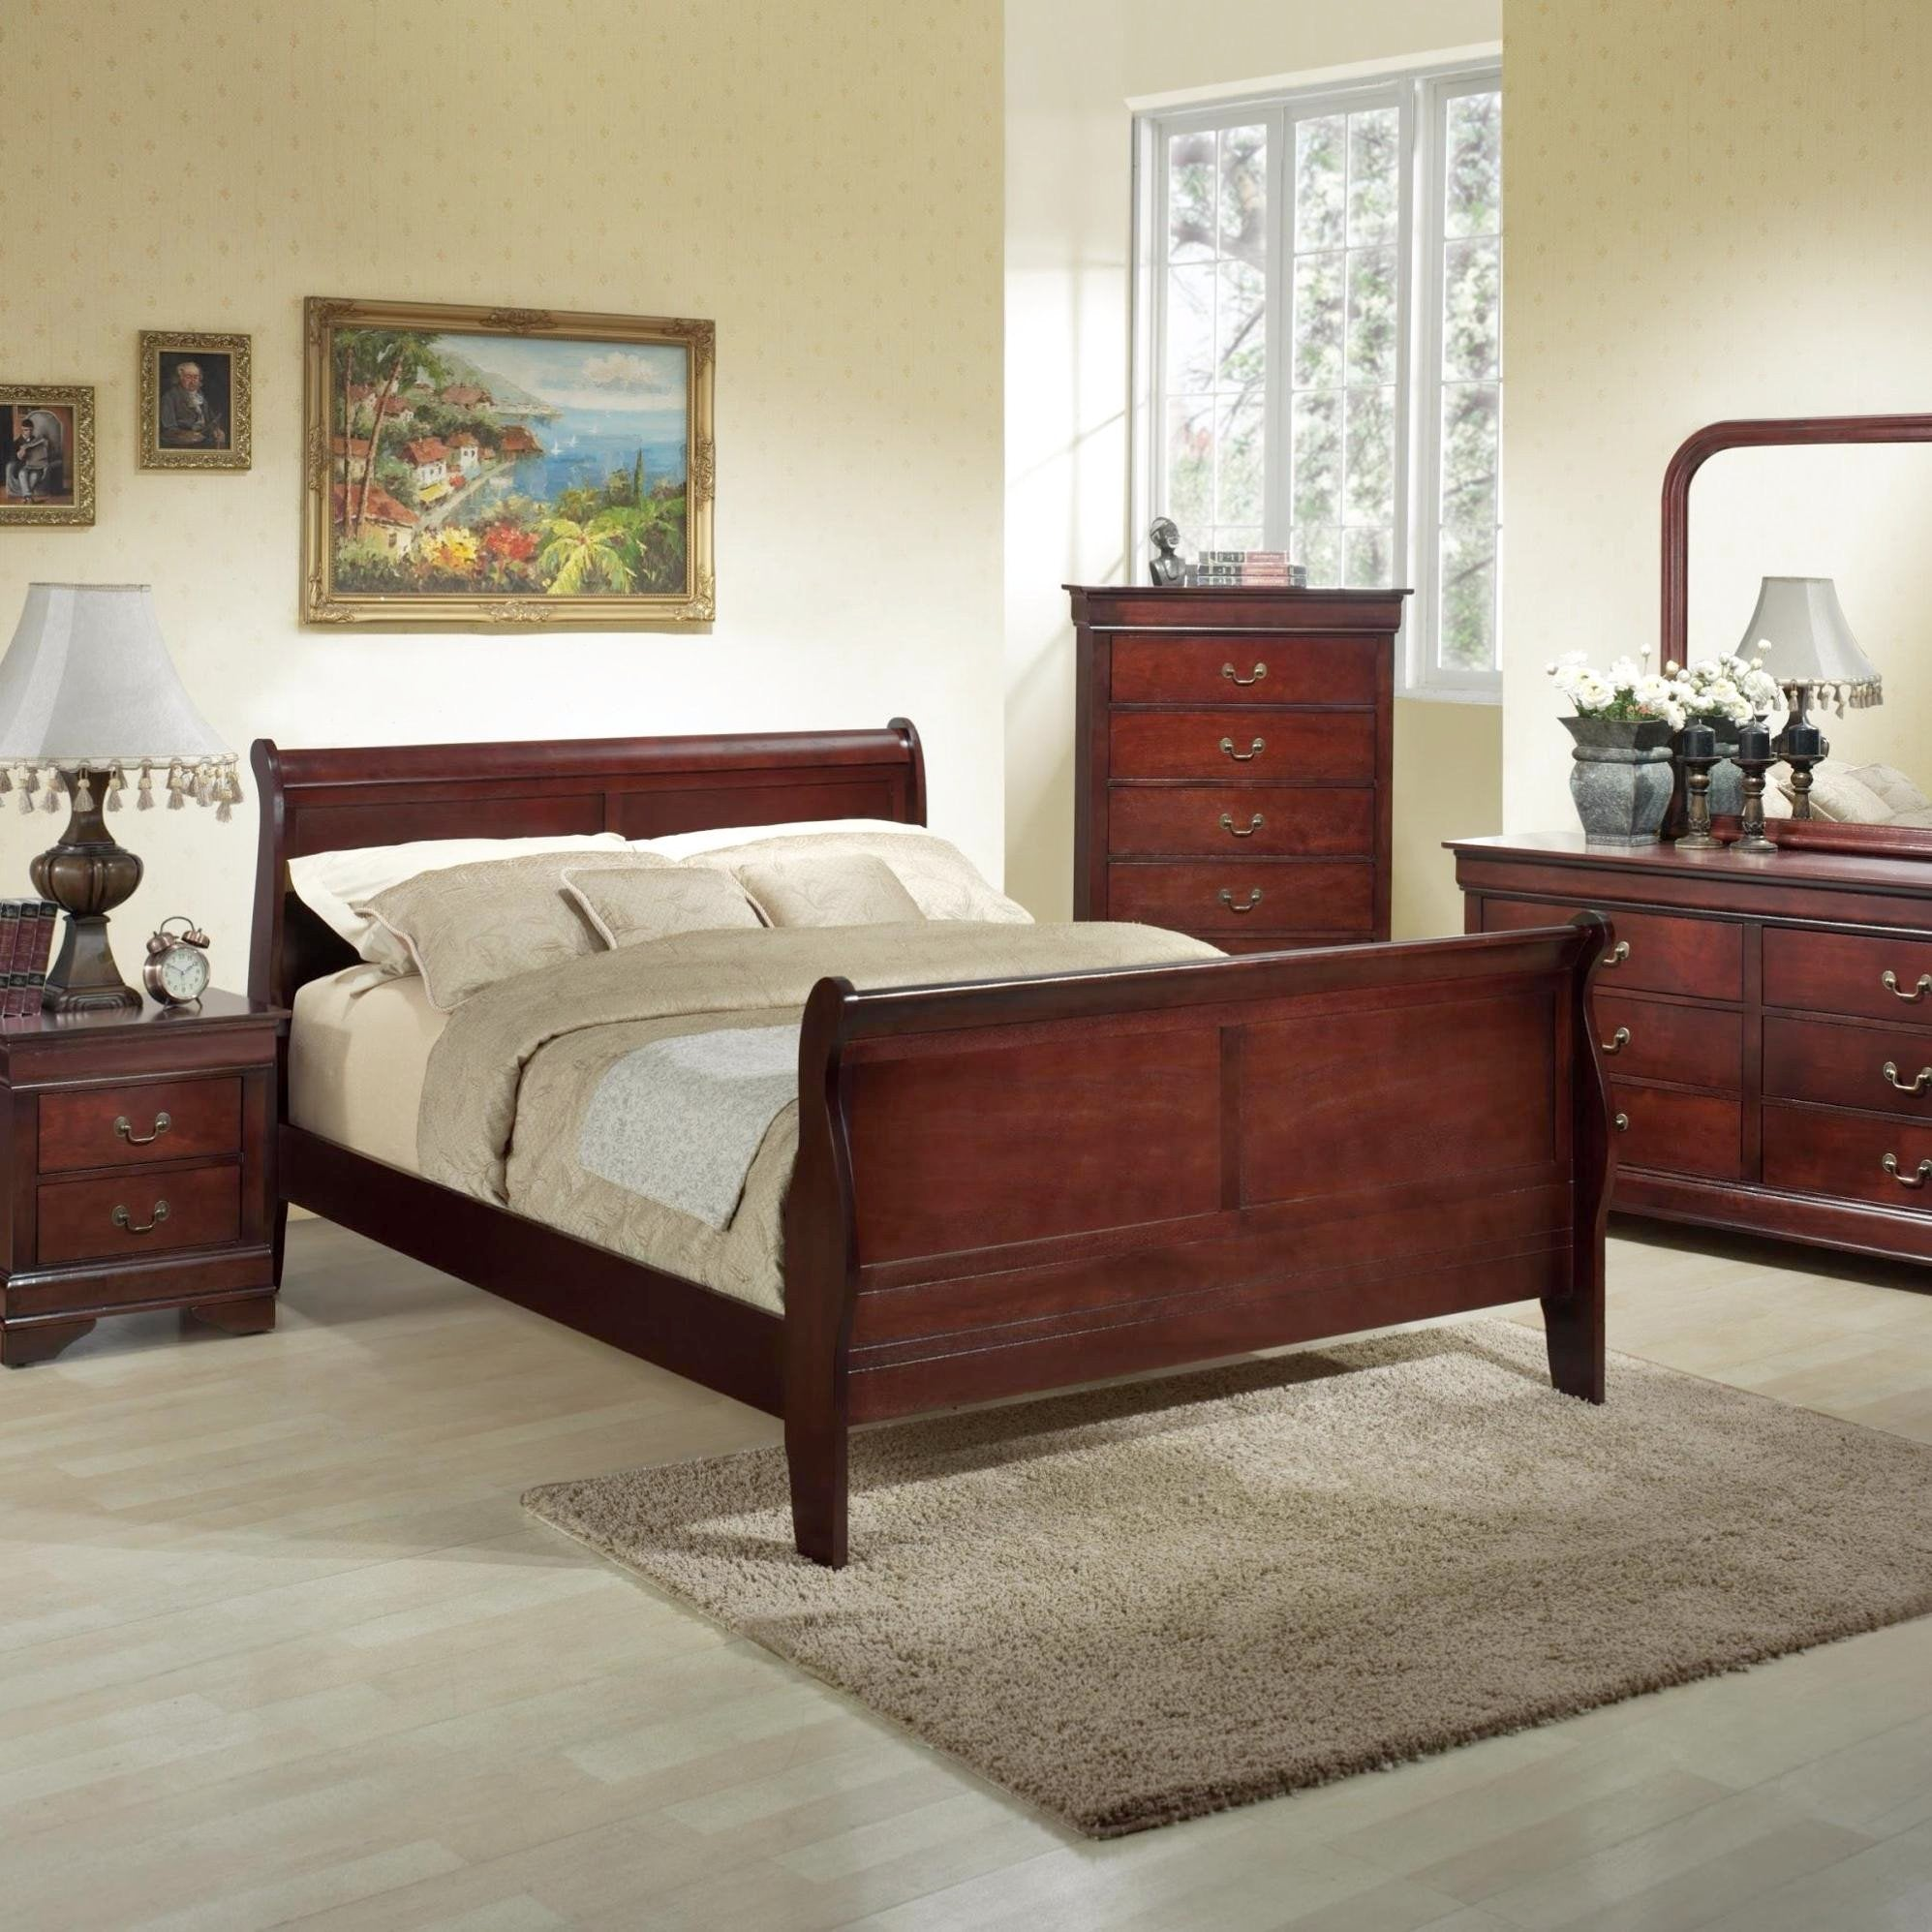 Louis Philippe | Bedroom Set, BEDROOM SET   Adams Furniture